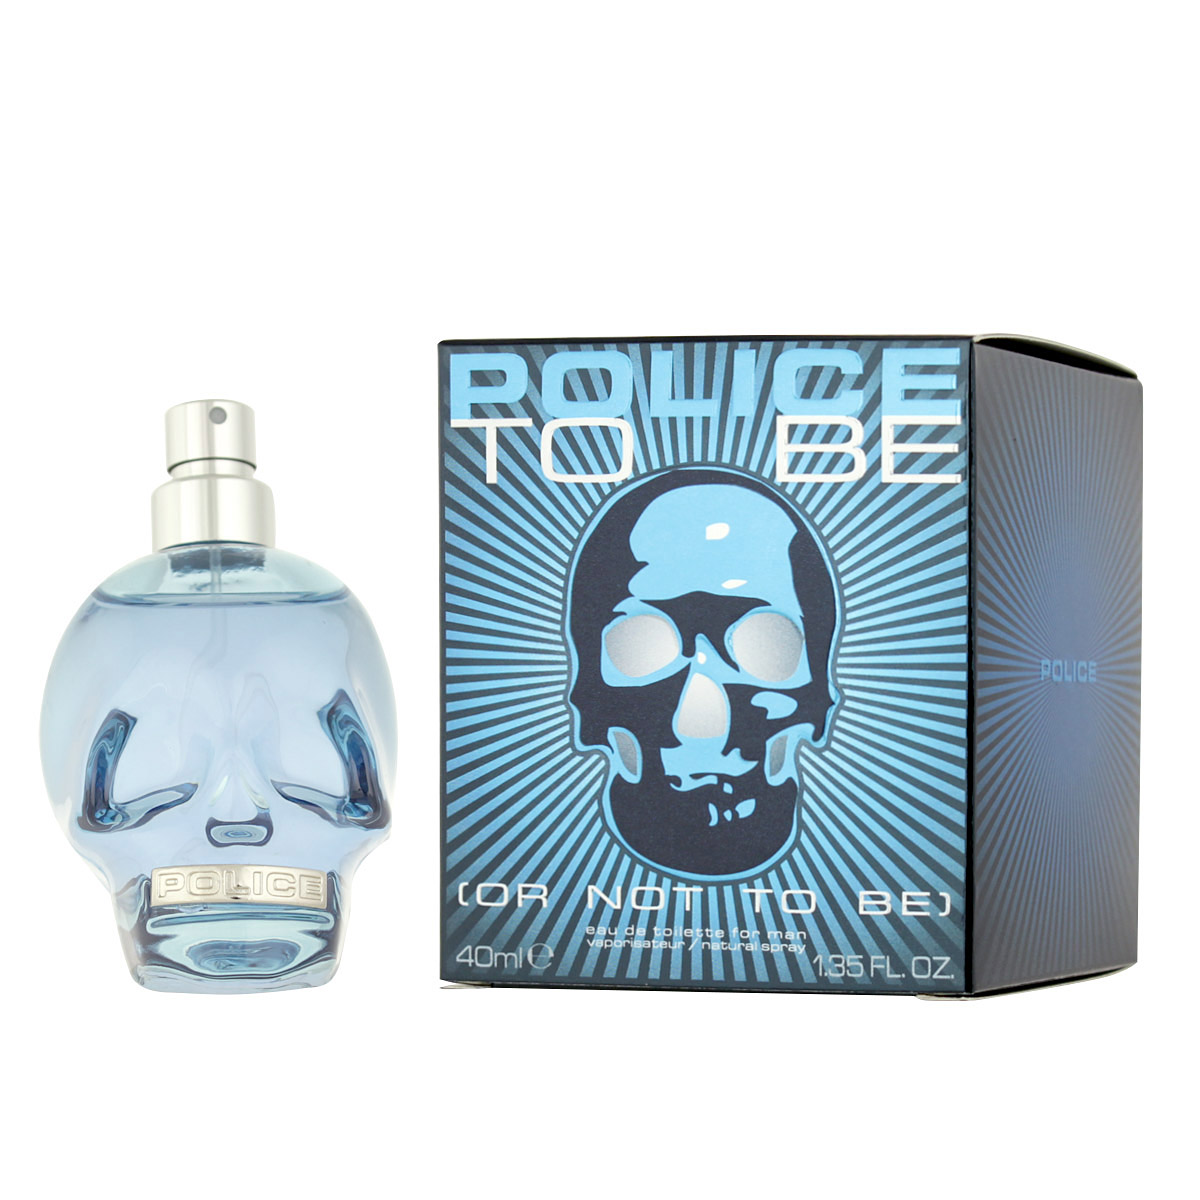 POLICE To Be (Or Not To Be) EDT 40 ml M